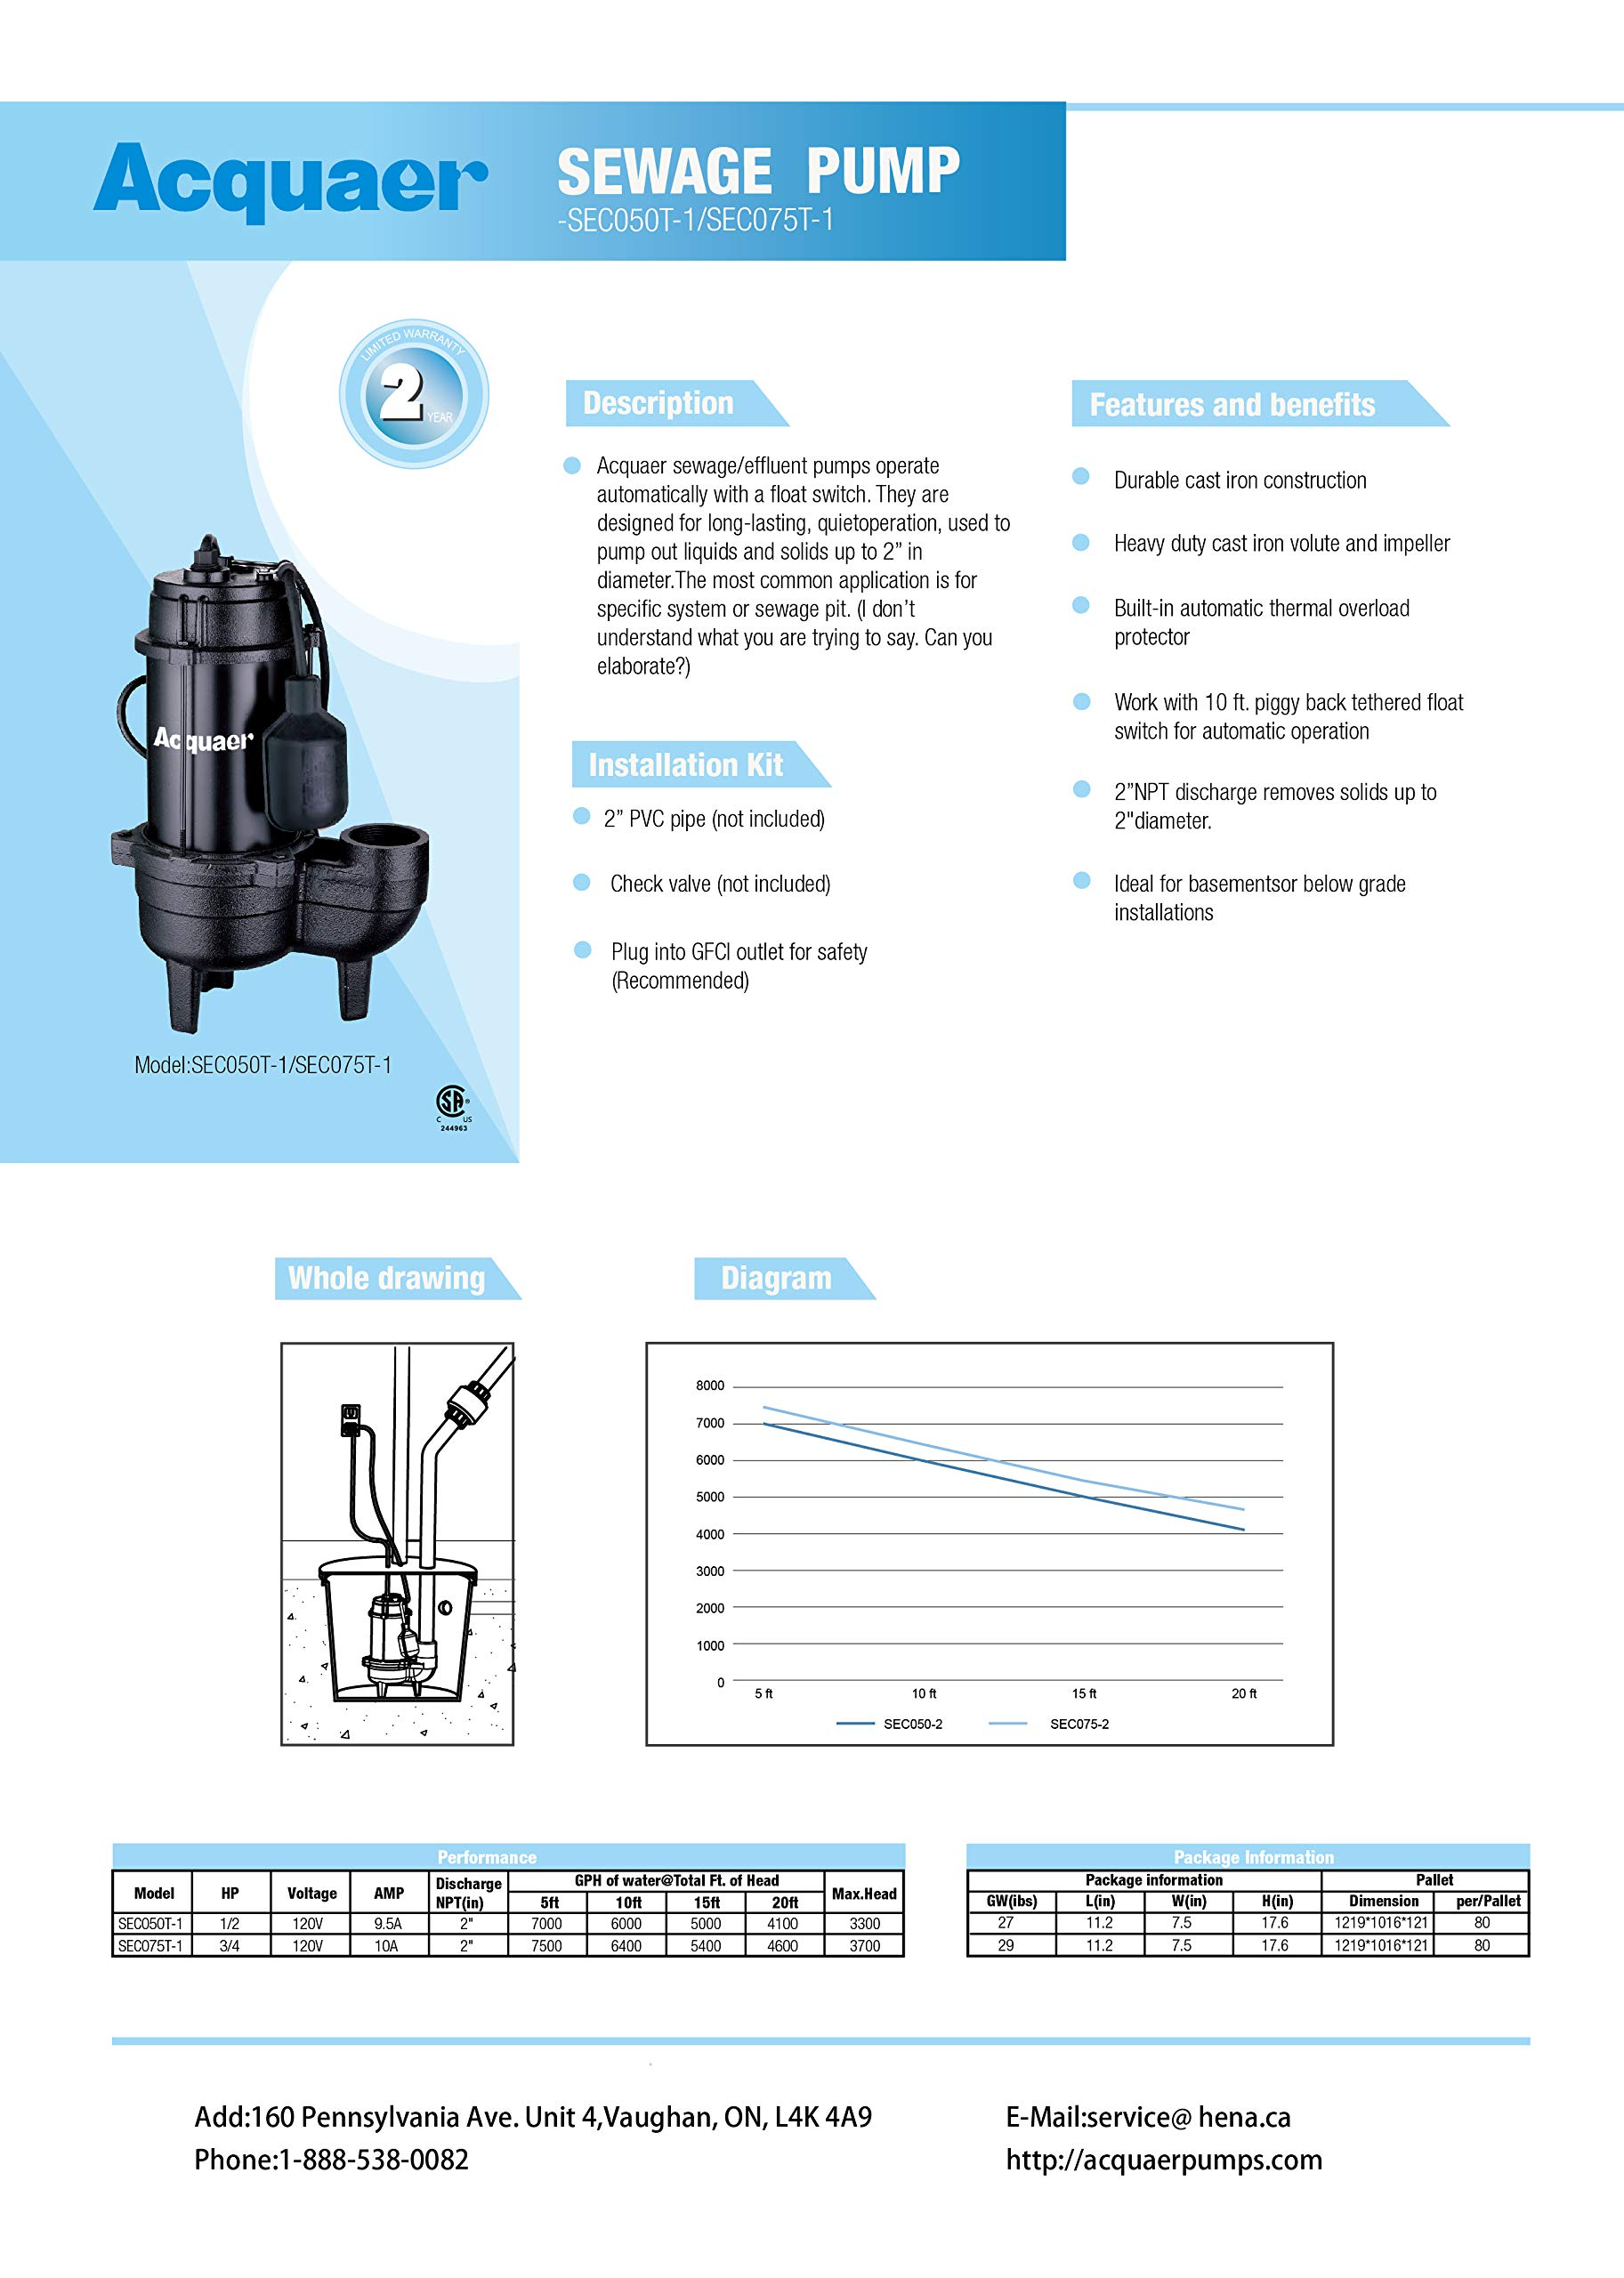 Acquaer 3/4 HP Cast iron Sewage Pump+Piggy back switch by Acquaer